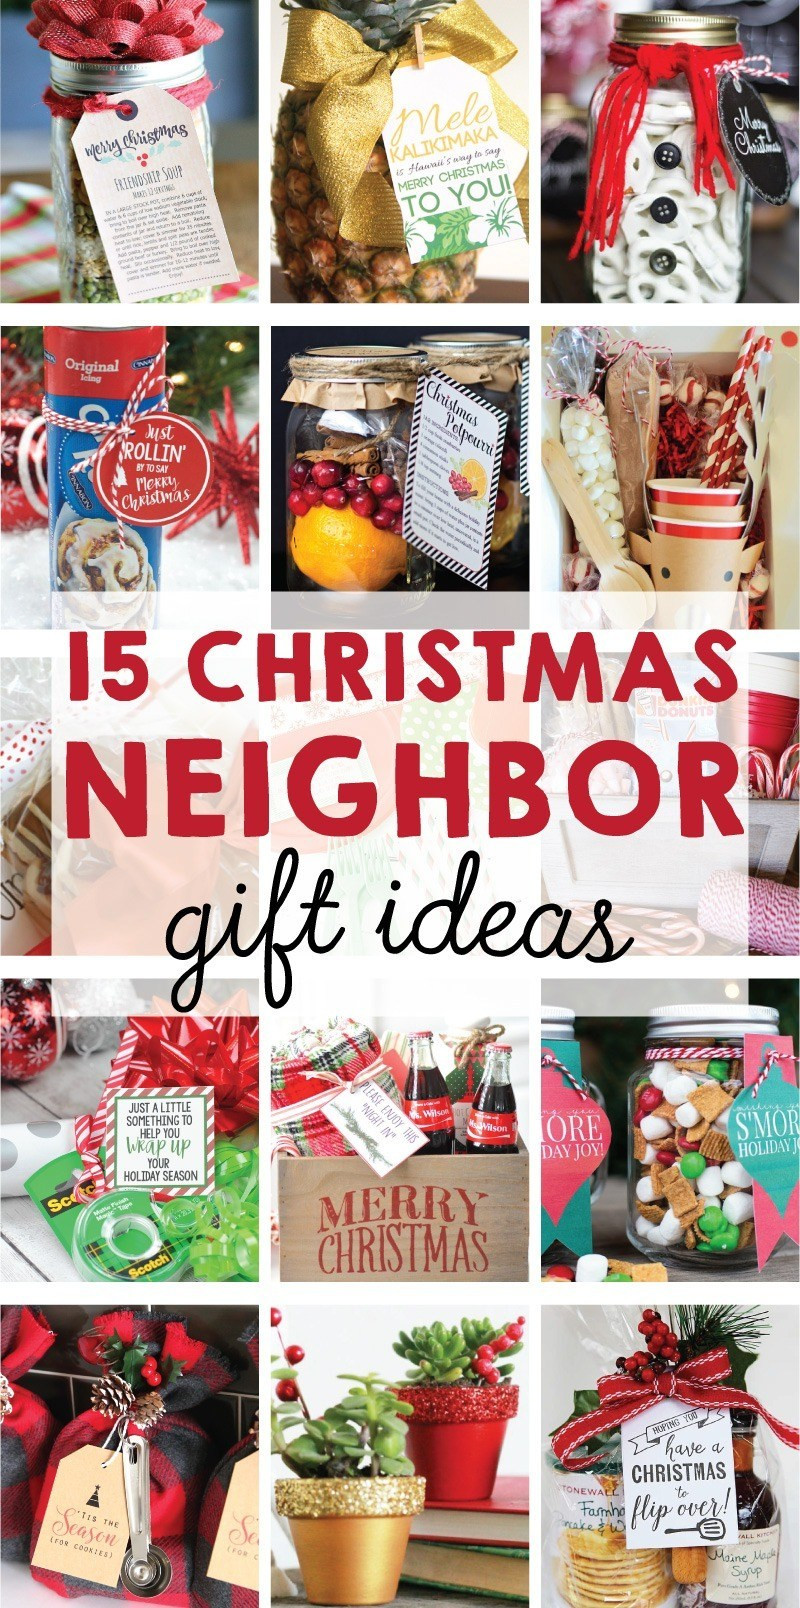 Holiday Gift Ideas For Neighbors  The BEST 15 Christmas Neighbor Gift Ideas on Love the Day